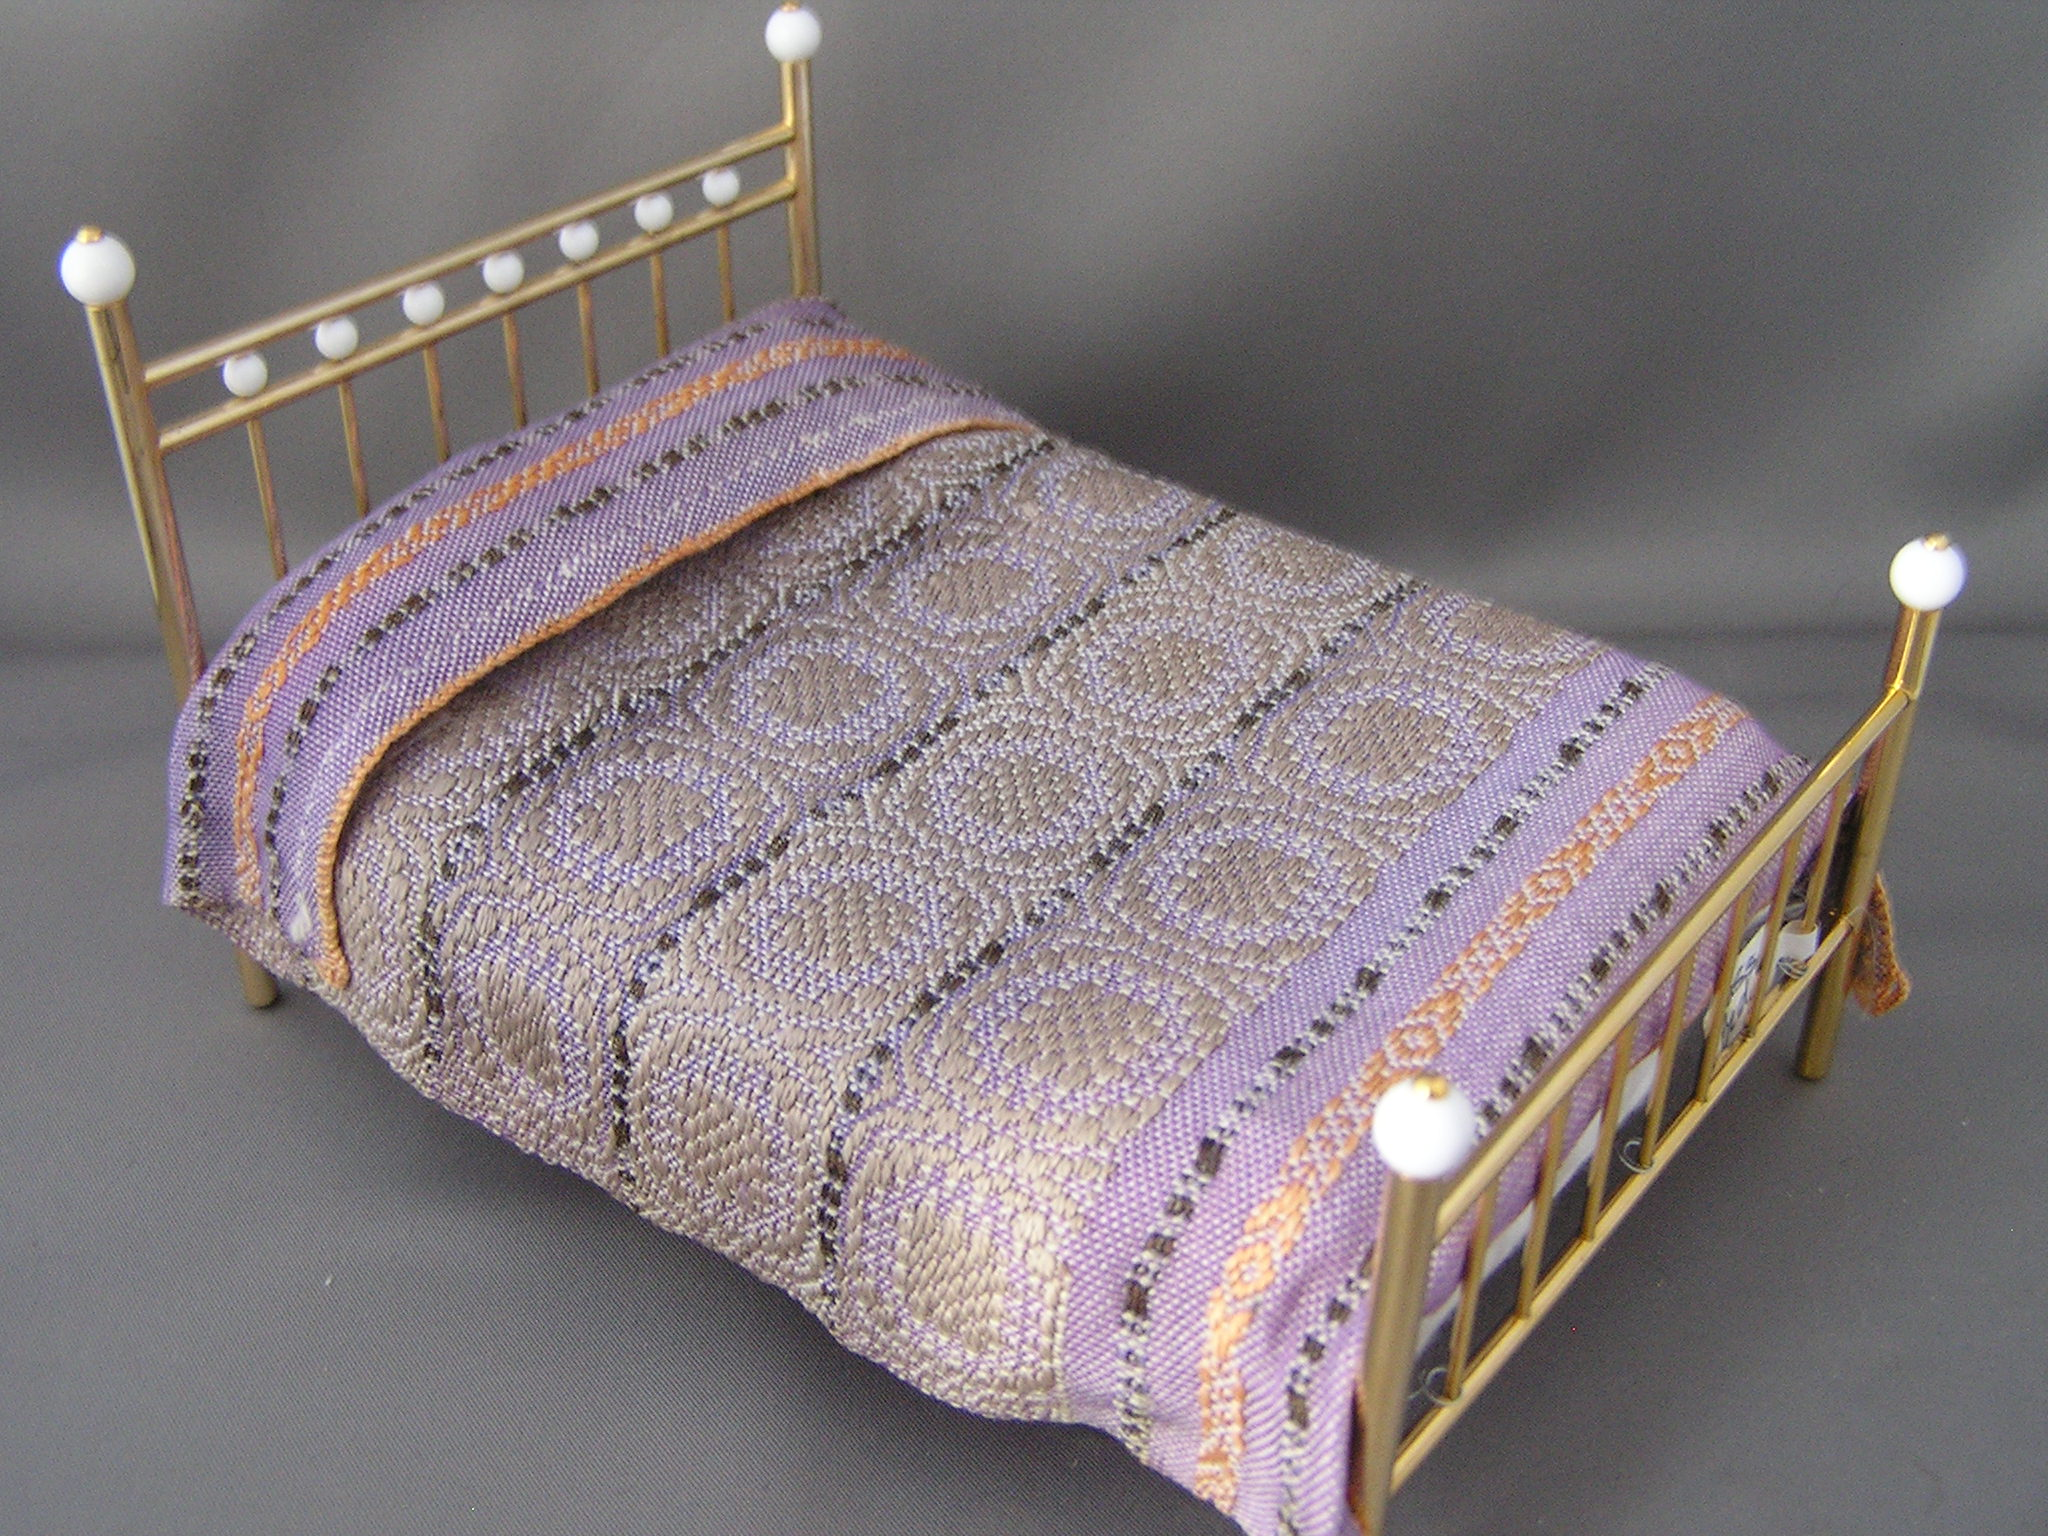 Hand Woven Bed Spread or Carpet, Shades of Lavender